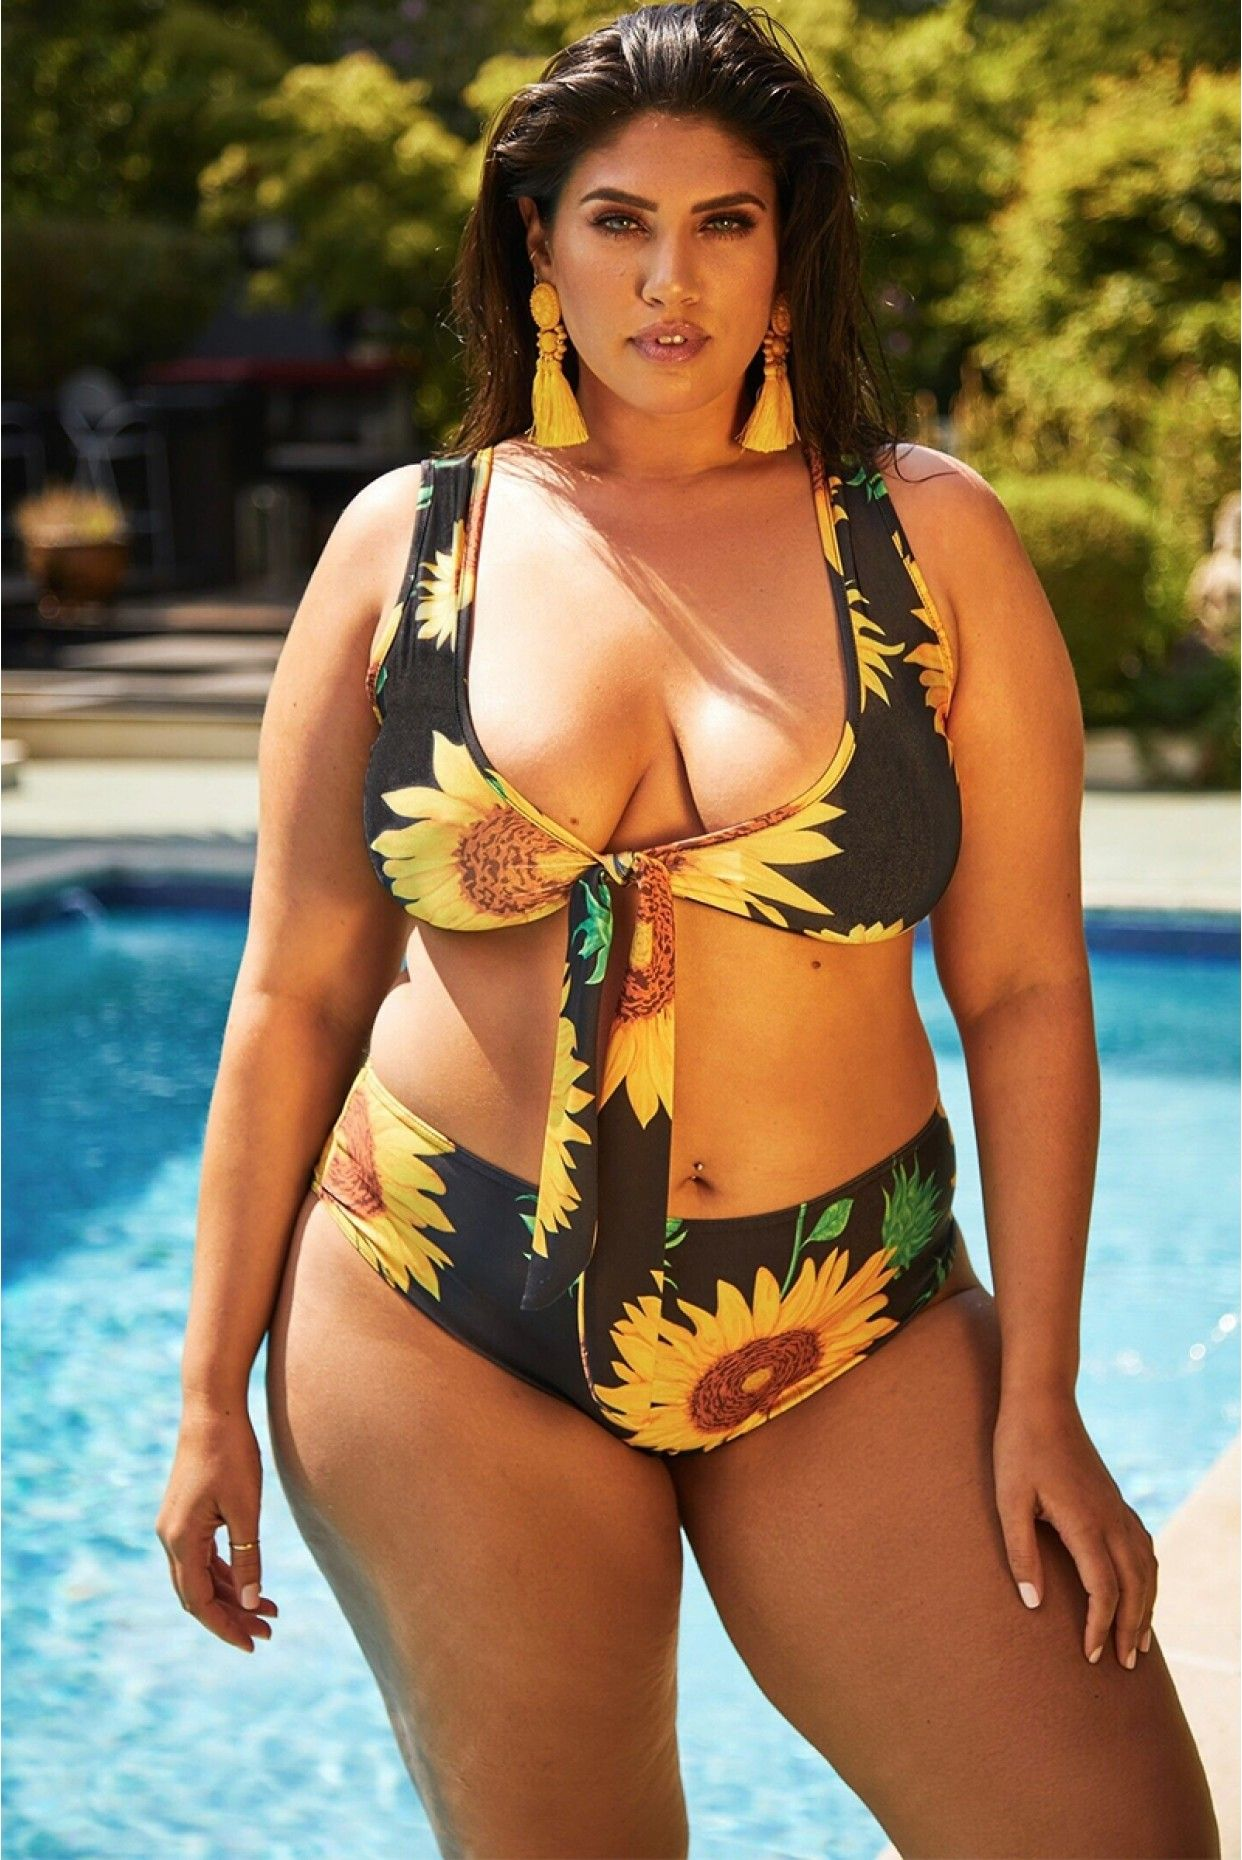 1ae3b1e92f2c0 Curvy Girl! Sunflower Bathing Suit | Fashionista | Curvy swimwear ...